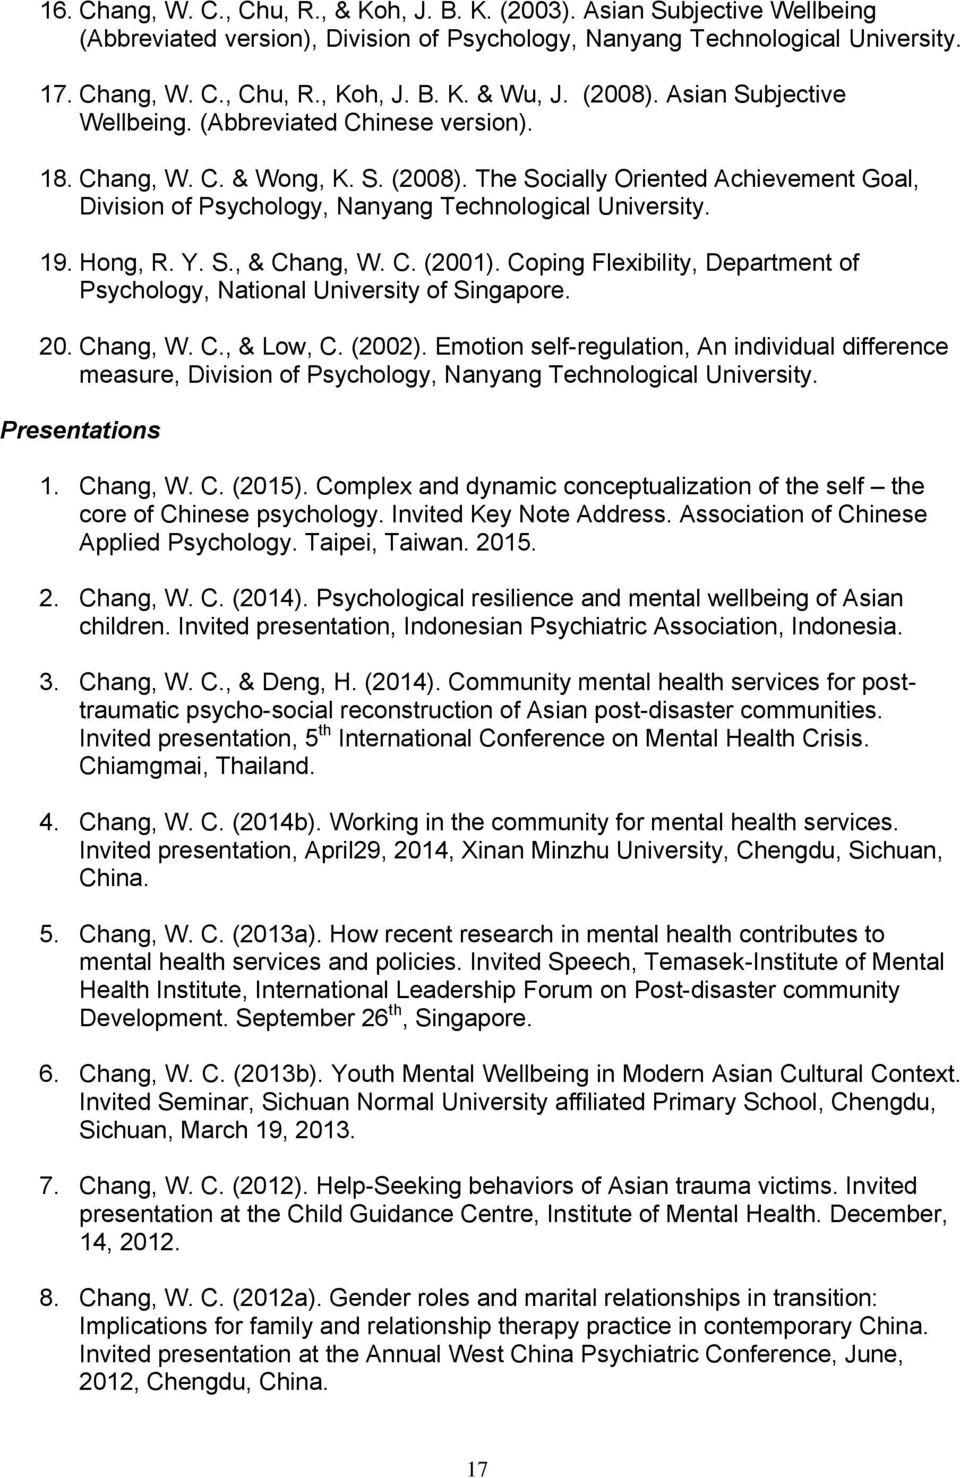 The Socially Oriented Achievement Goal, Division of Psychology, Nanyang Technological University. 19. Hong, R. Y. S., & Chang, W. C. (2001).